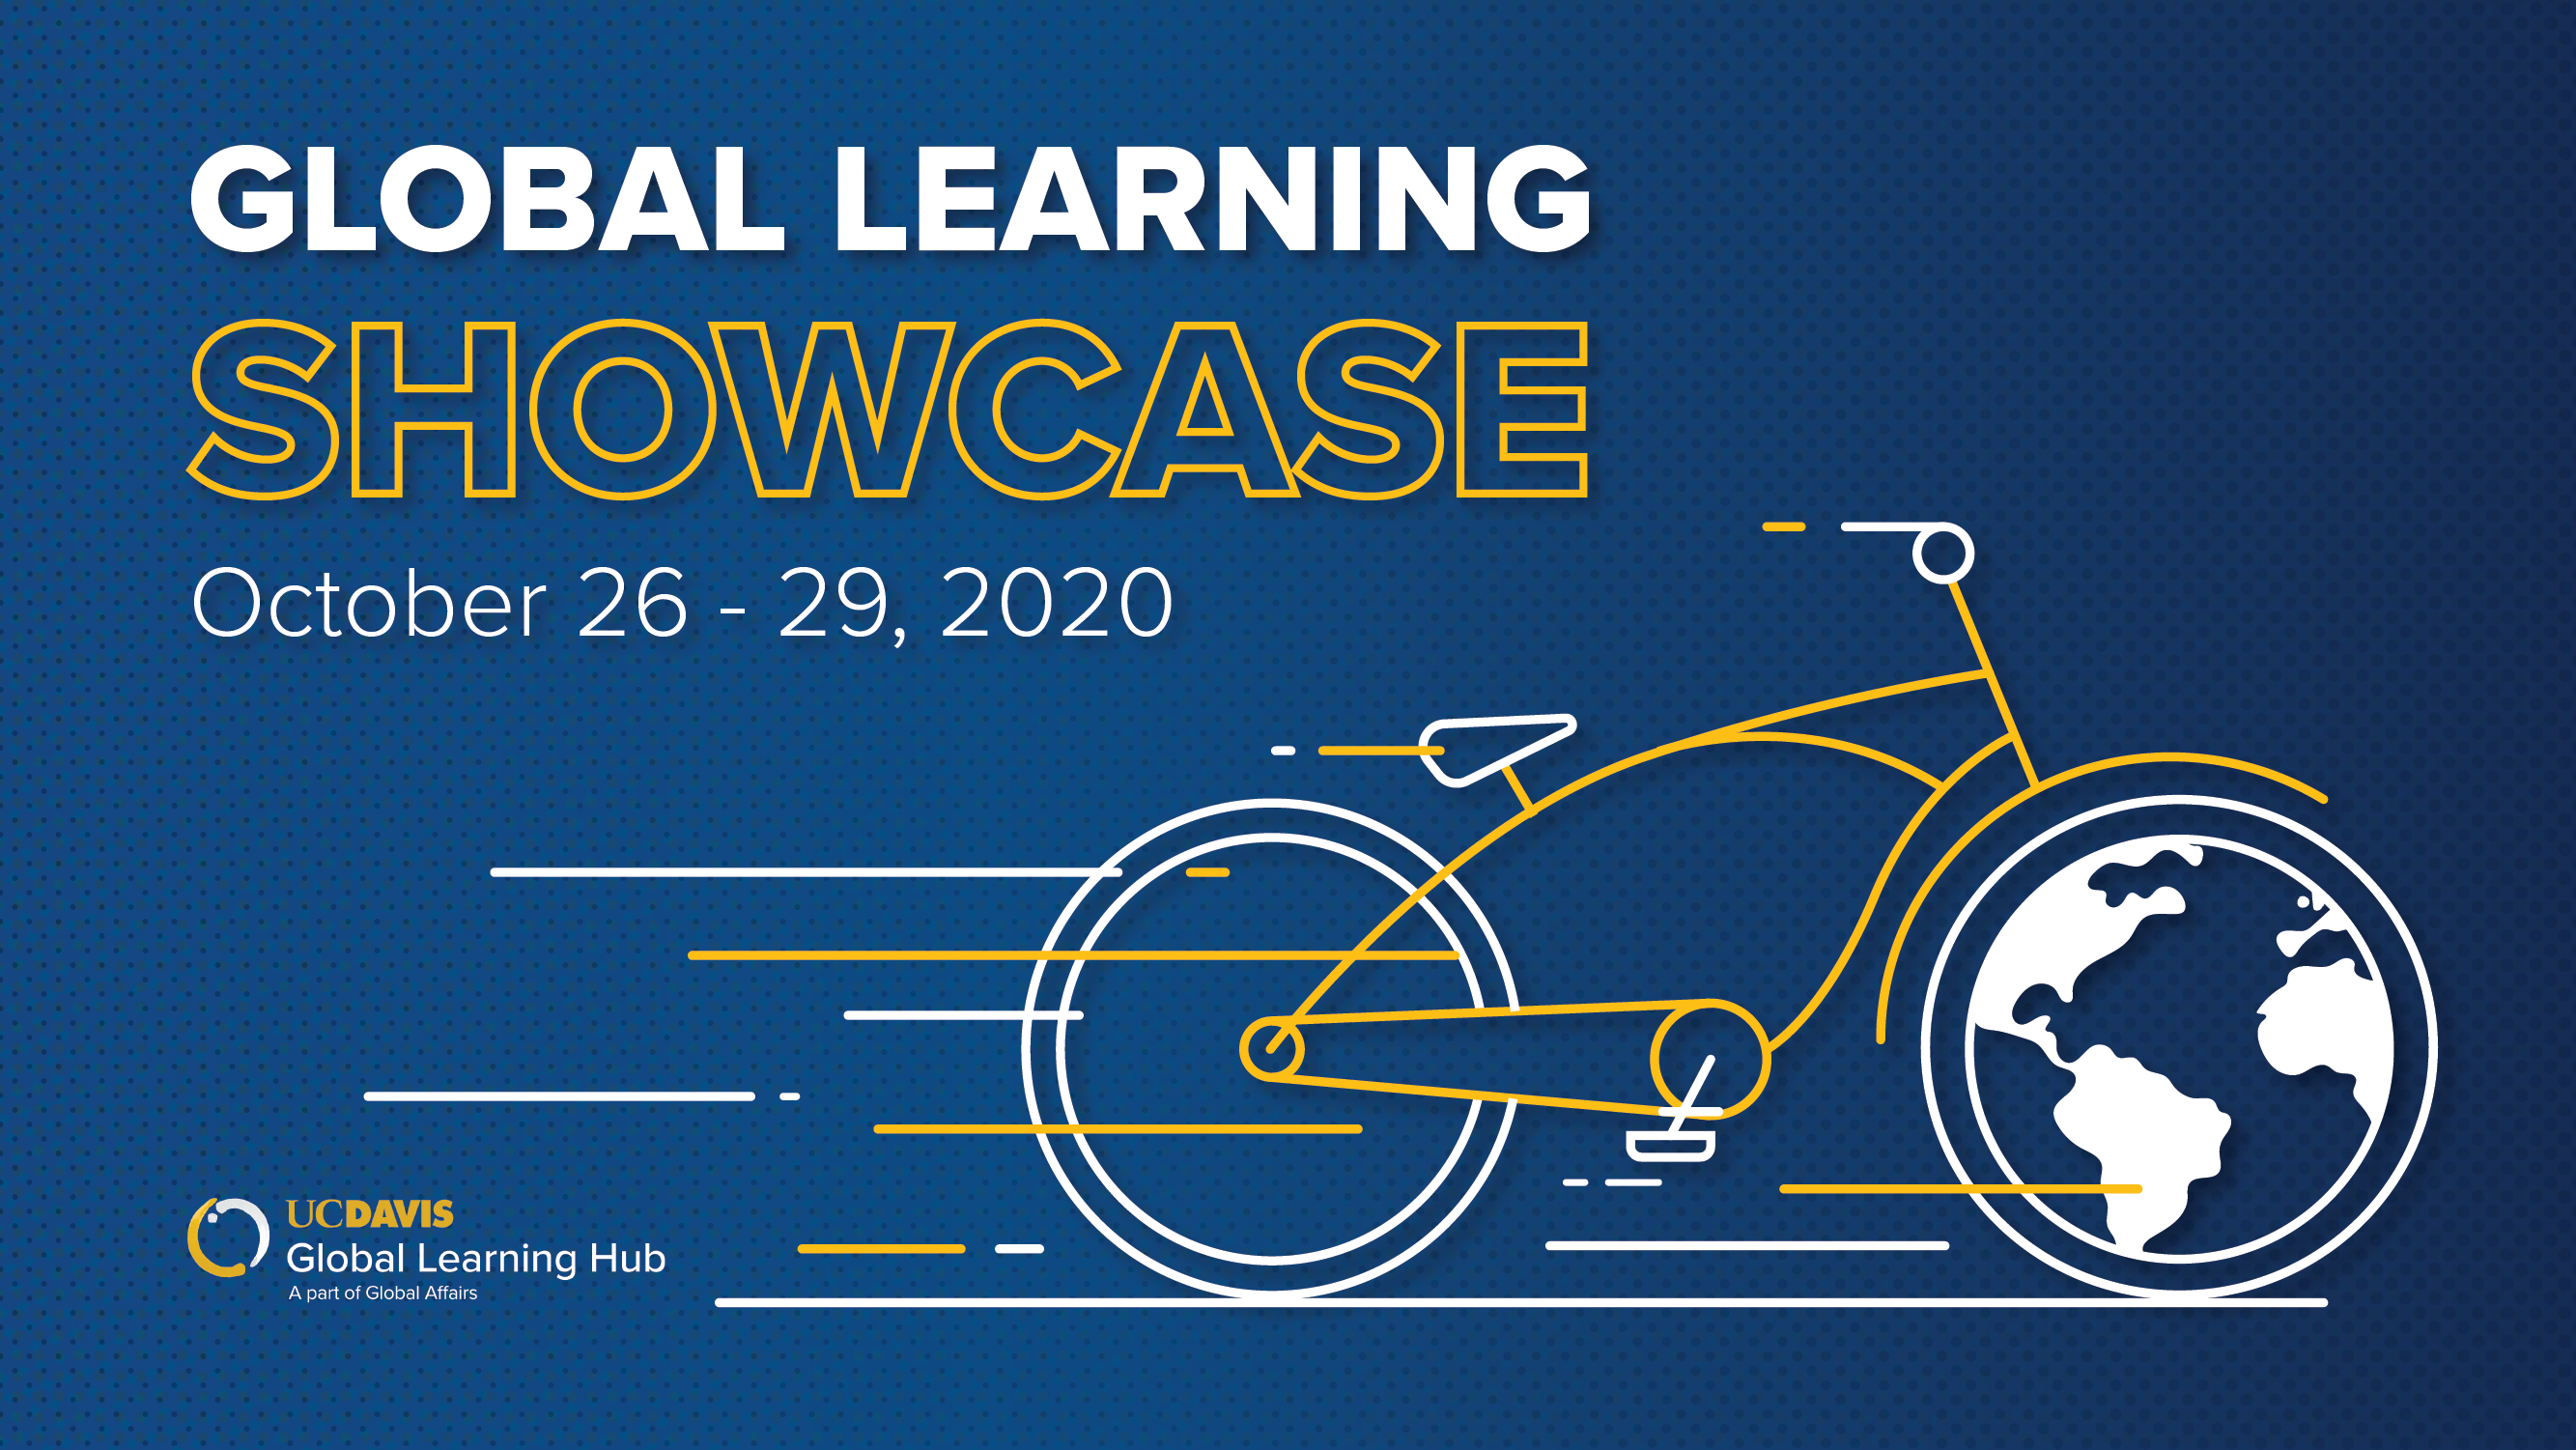 Global Learning Showcase - Postcard